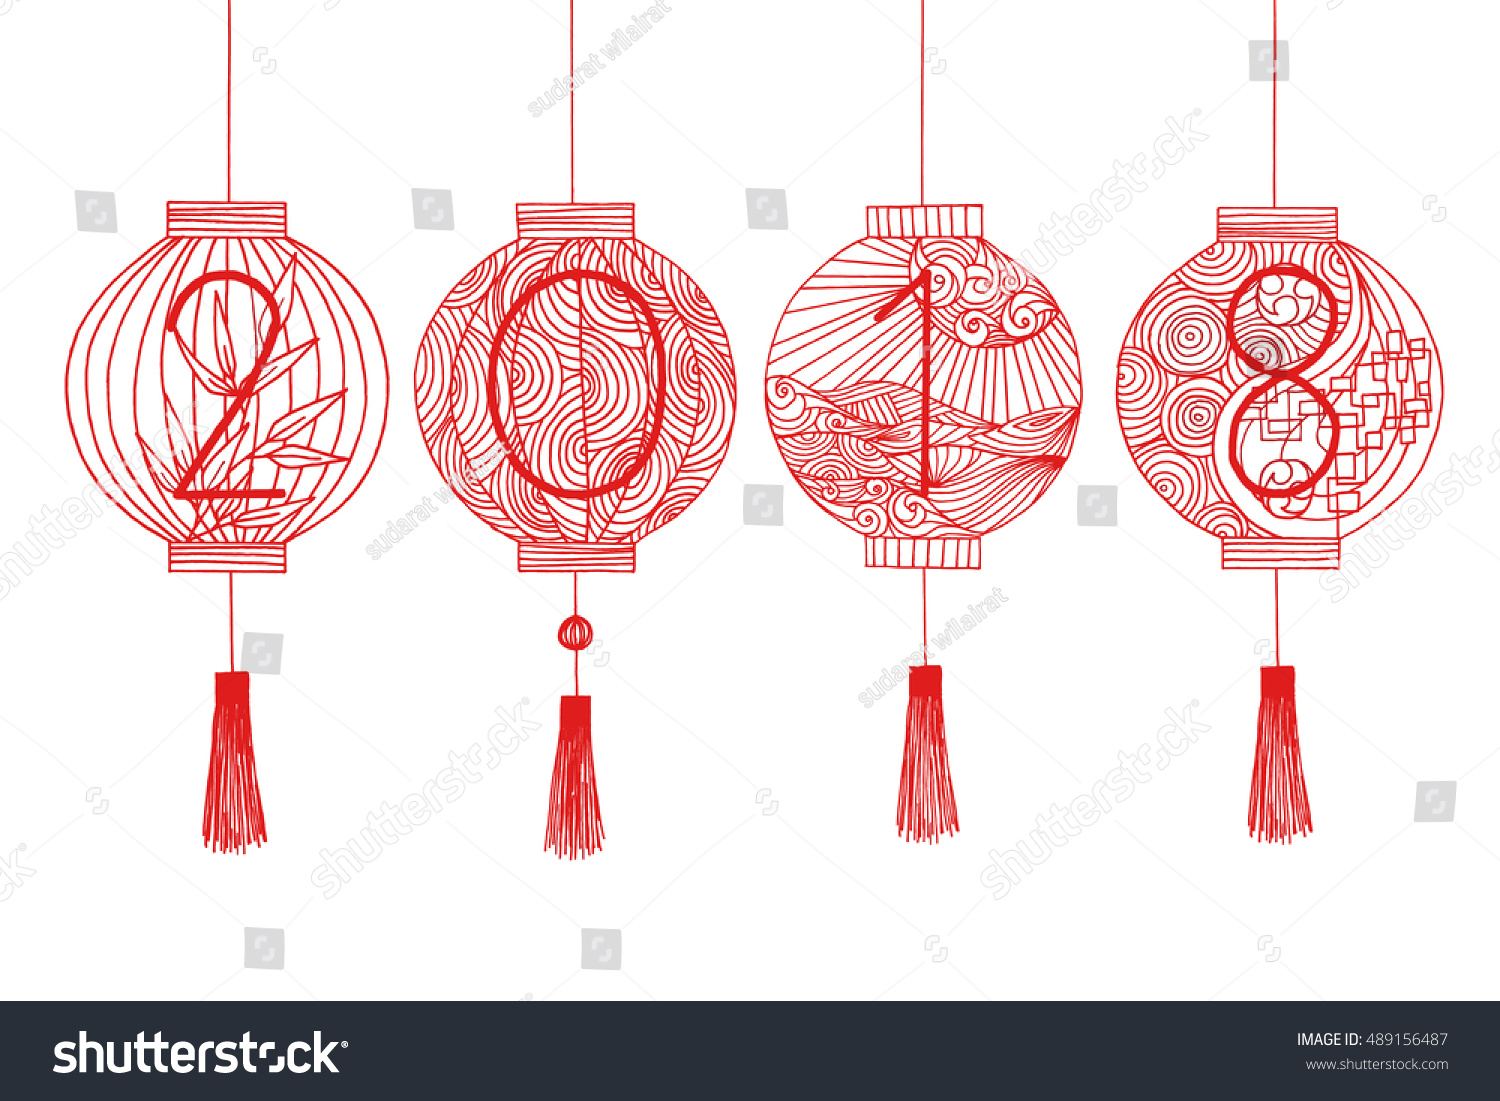 happy chinese new year 2018 hand drawing chinese or japanese lantern with line art pattern